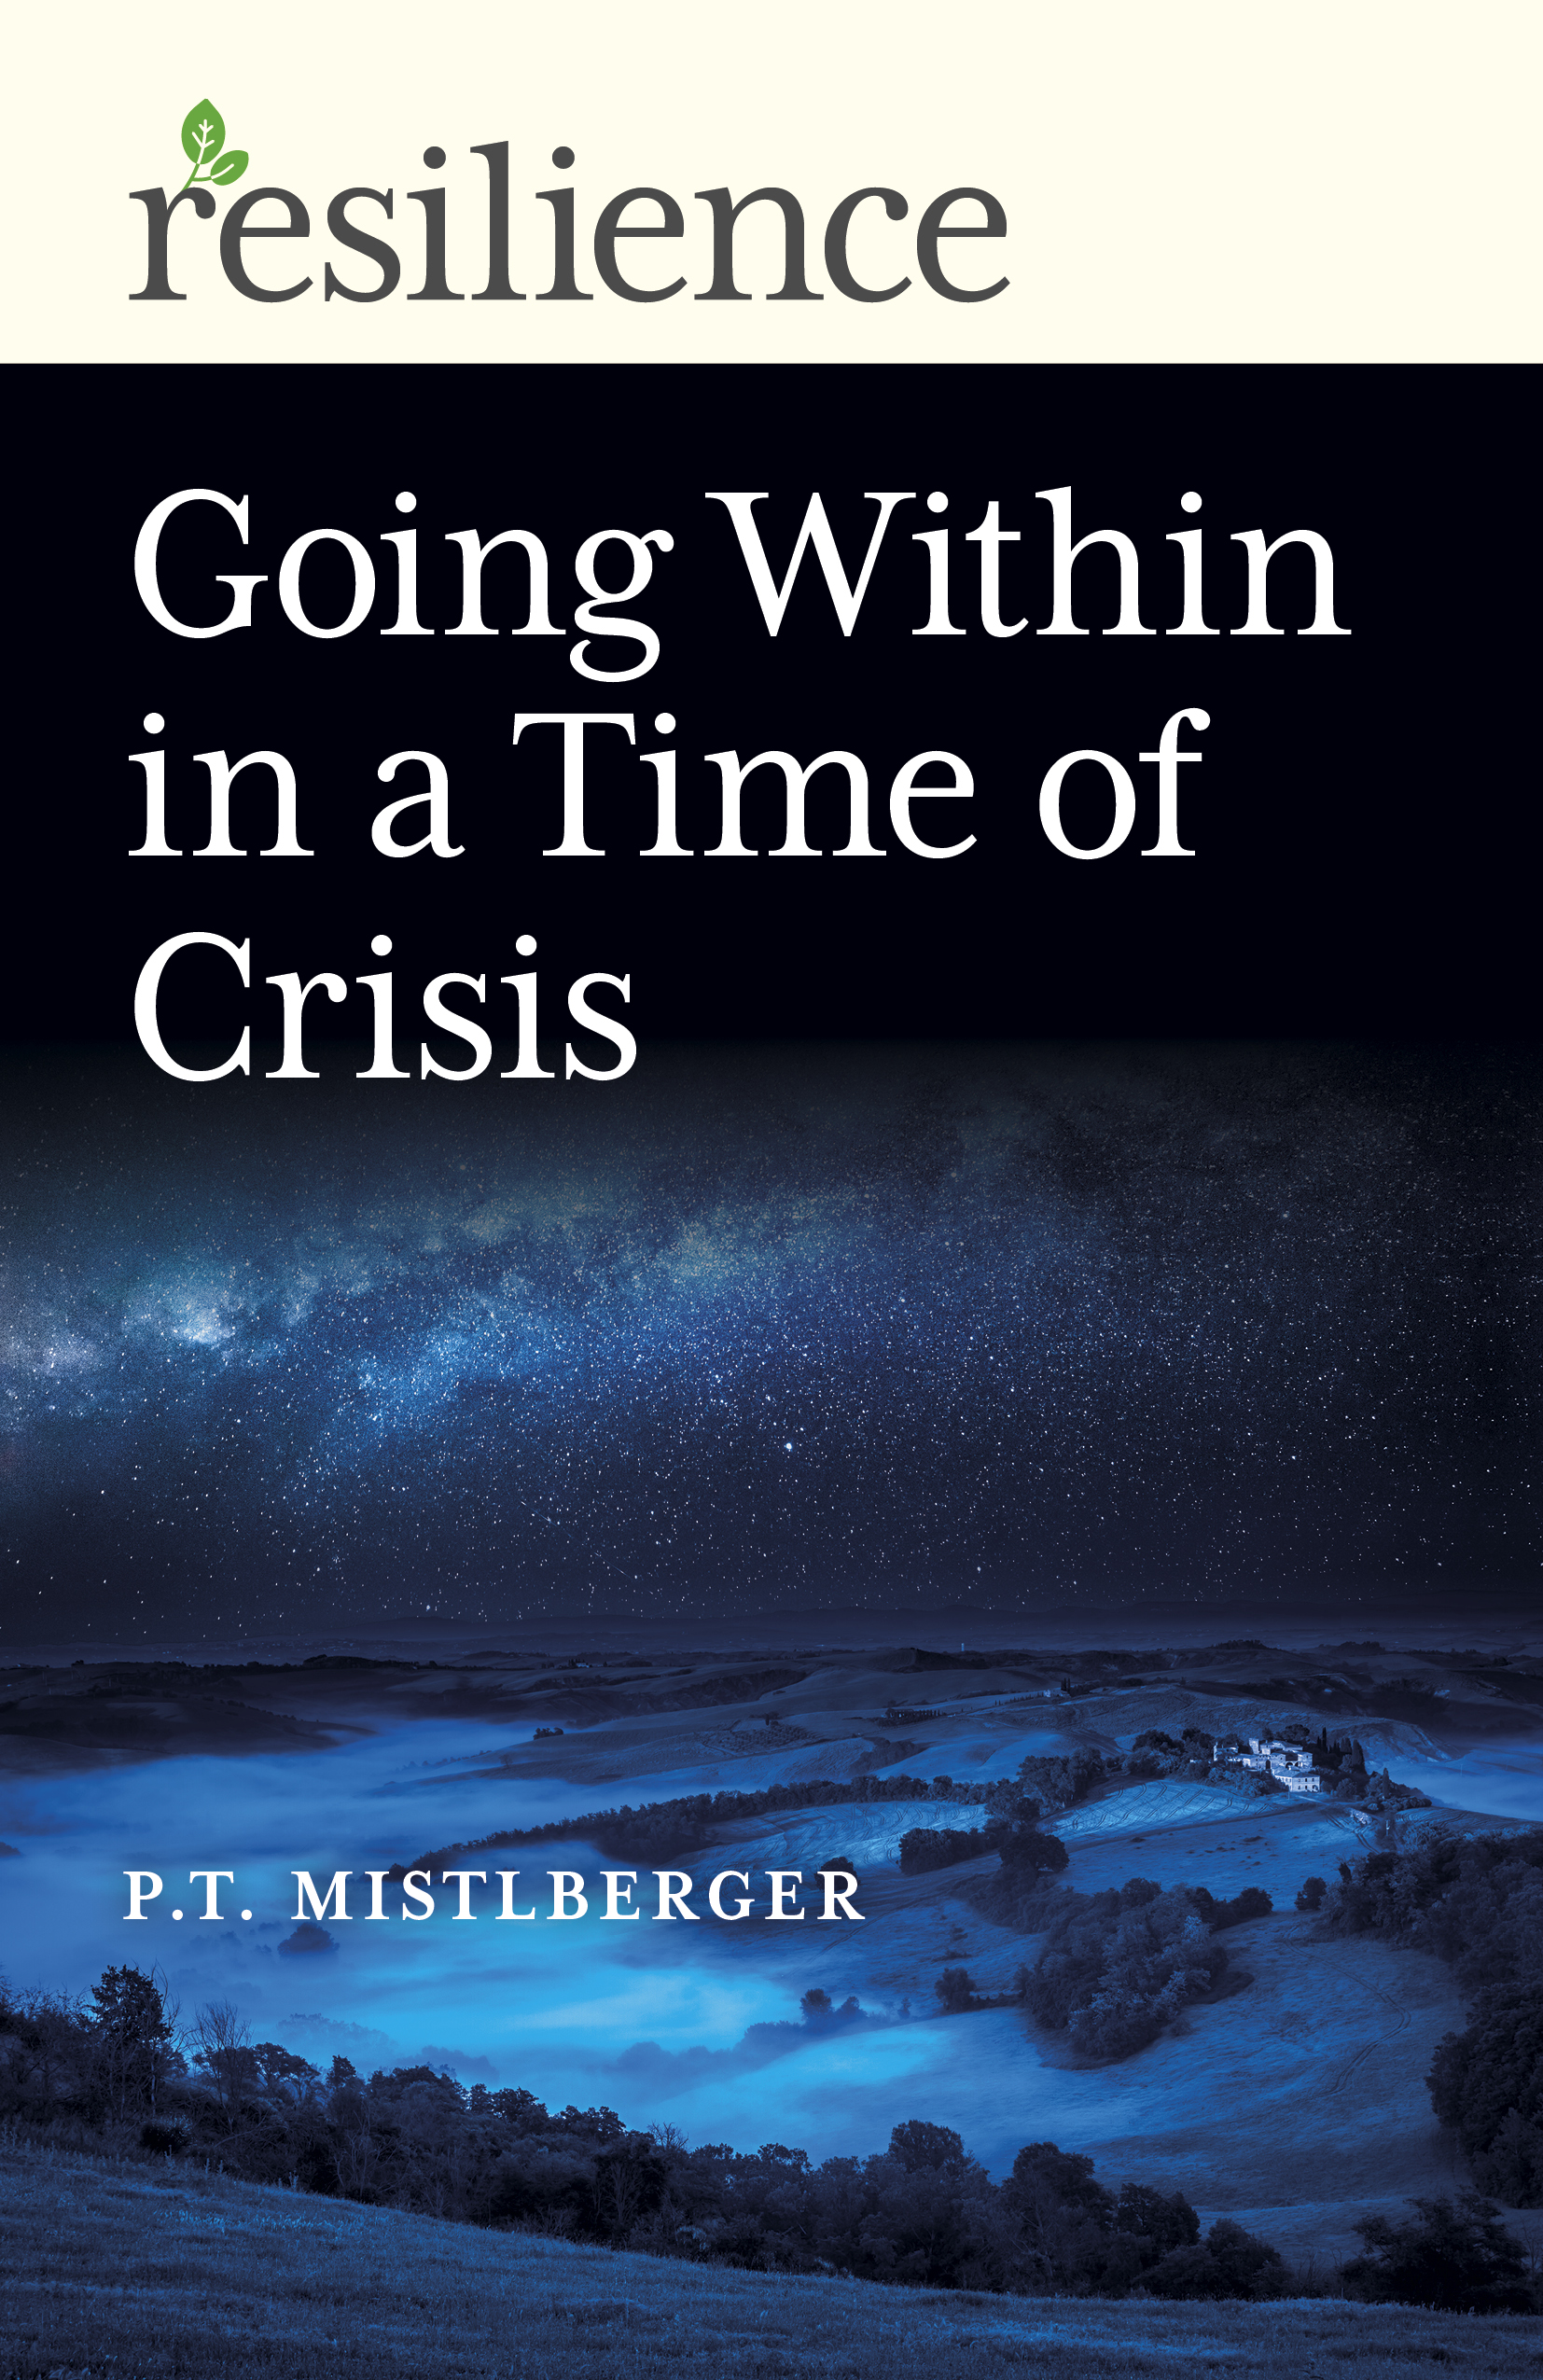 Going Within in a Time of Crisis